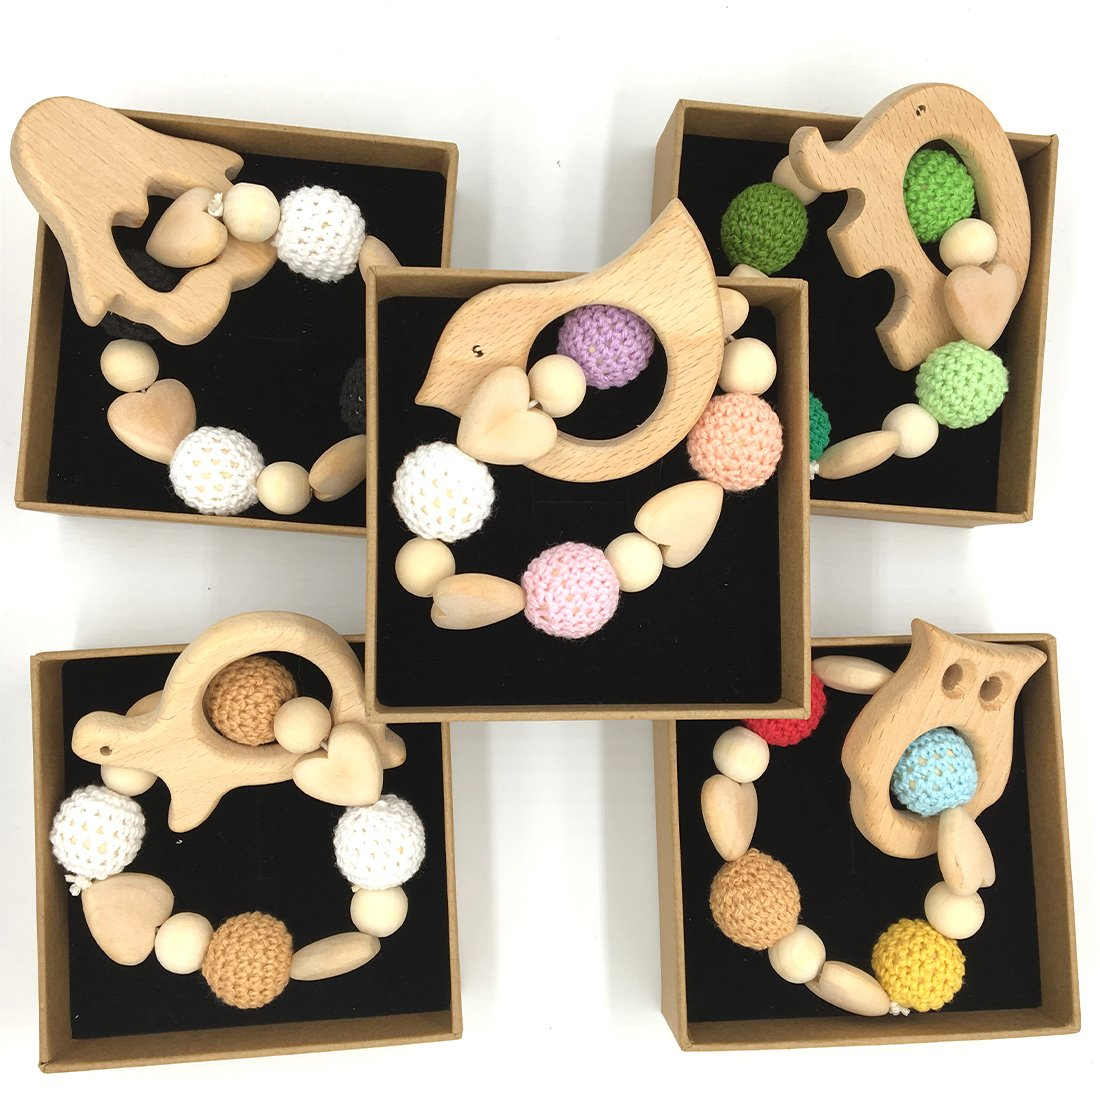 Coskiss DIY Baby Teether Juguetes Accesorios Kit Beb/é Madera Teething Wood Anillo Blending libertad creativa para la decoraci/ón del beb/é Baby dentici/ón A131